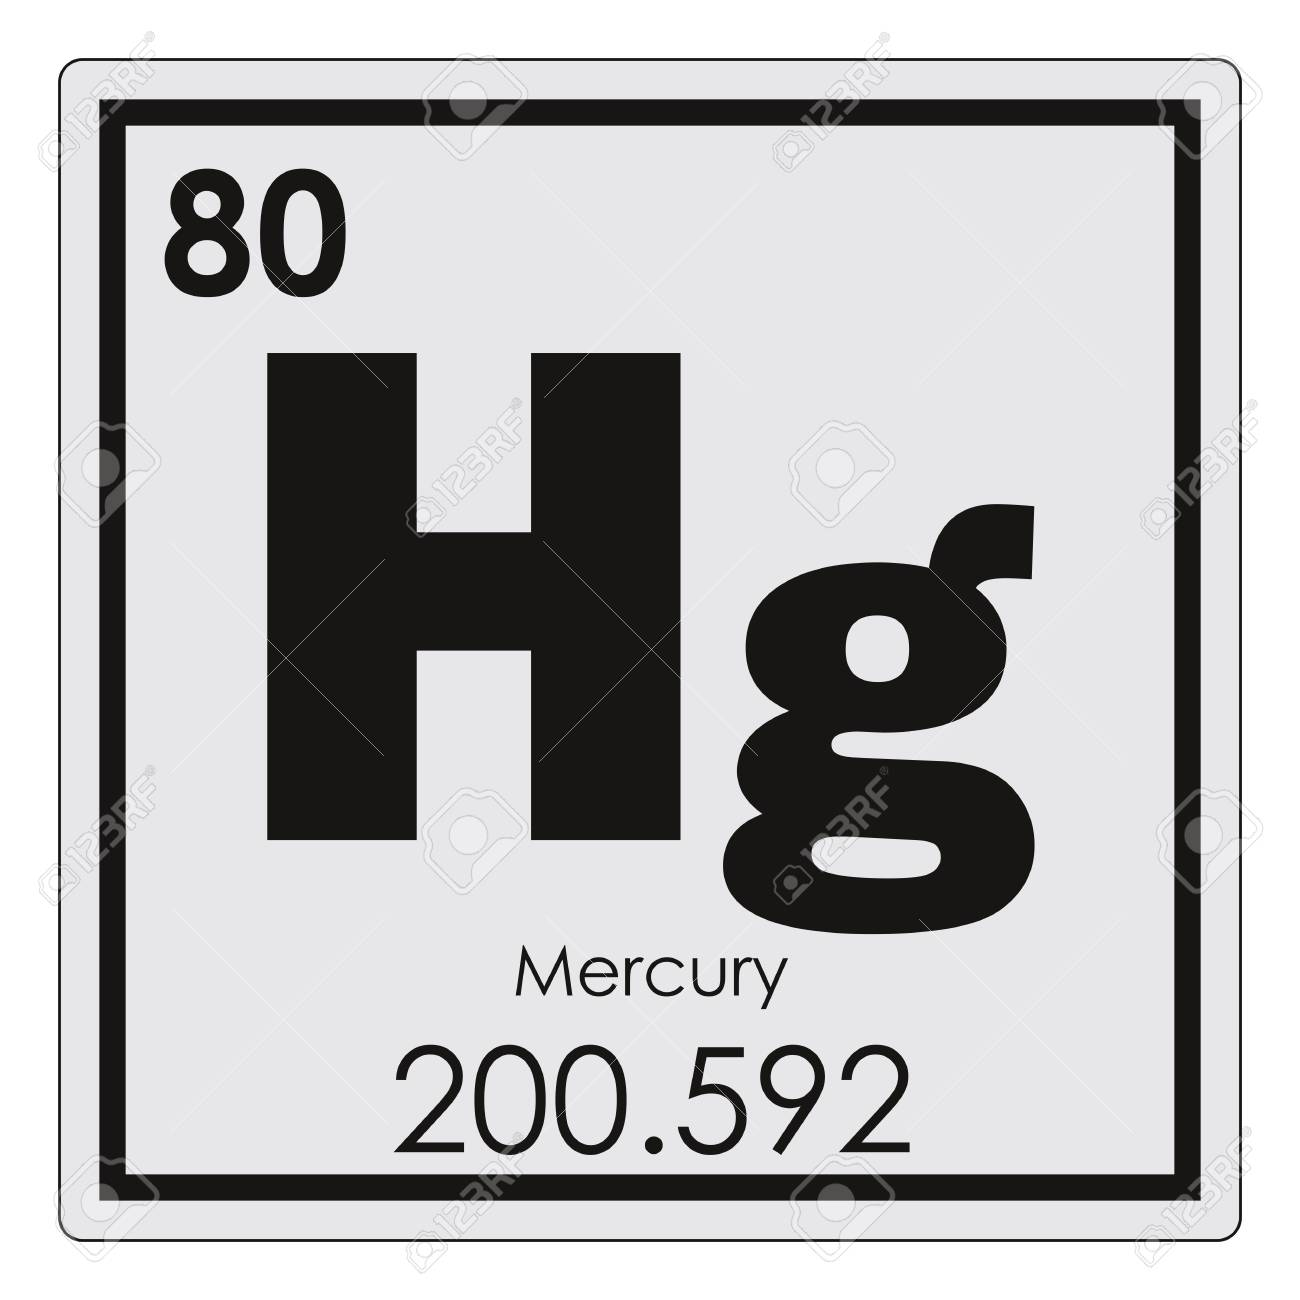 Mercury chemical element periodic table science symbol stock photo mercury chemical element periodic table science symbol stock photo 95059298 urtaz Image collections